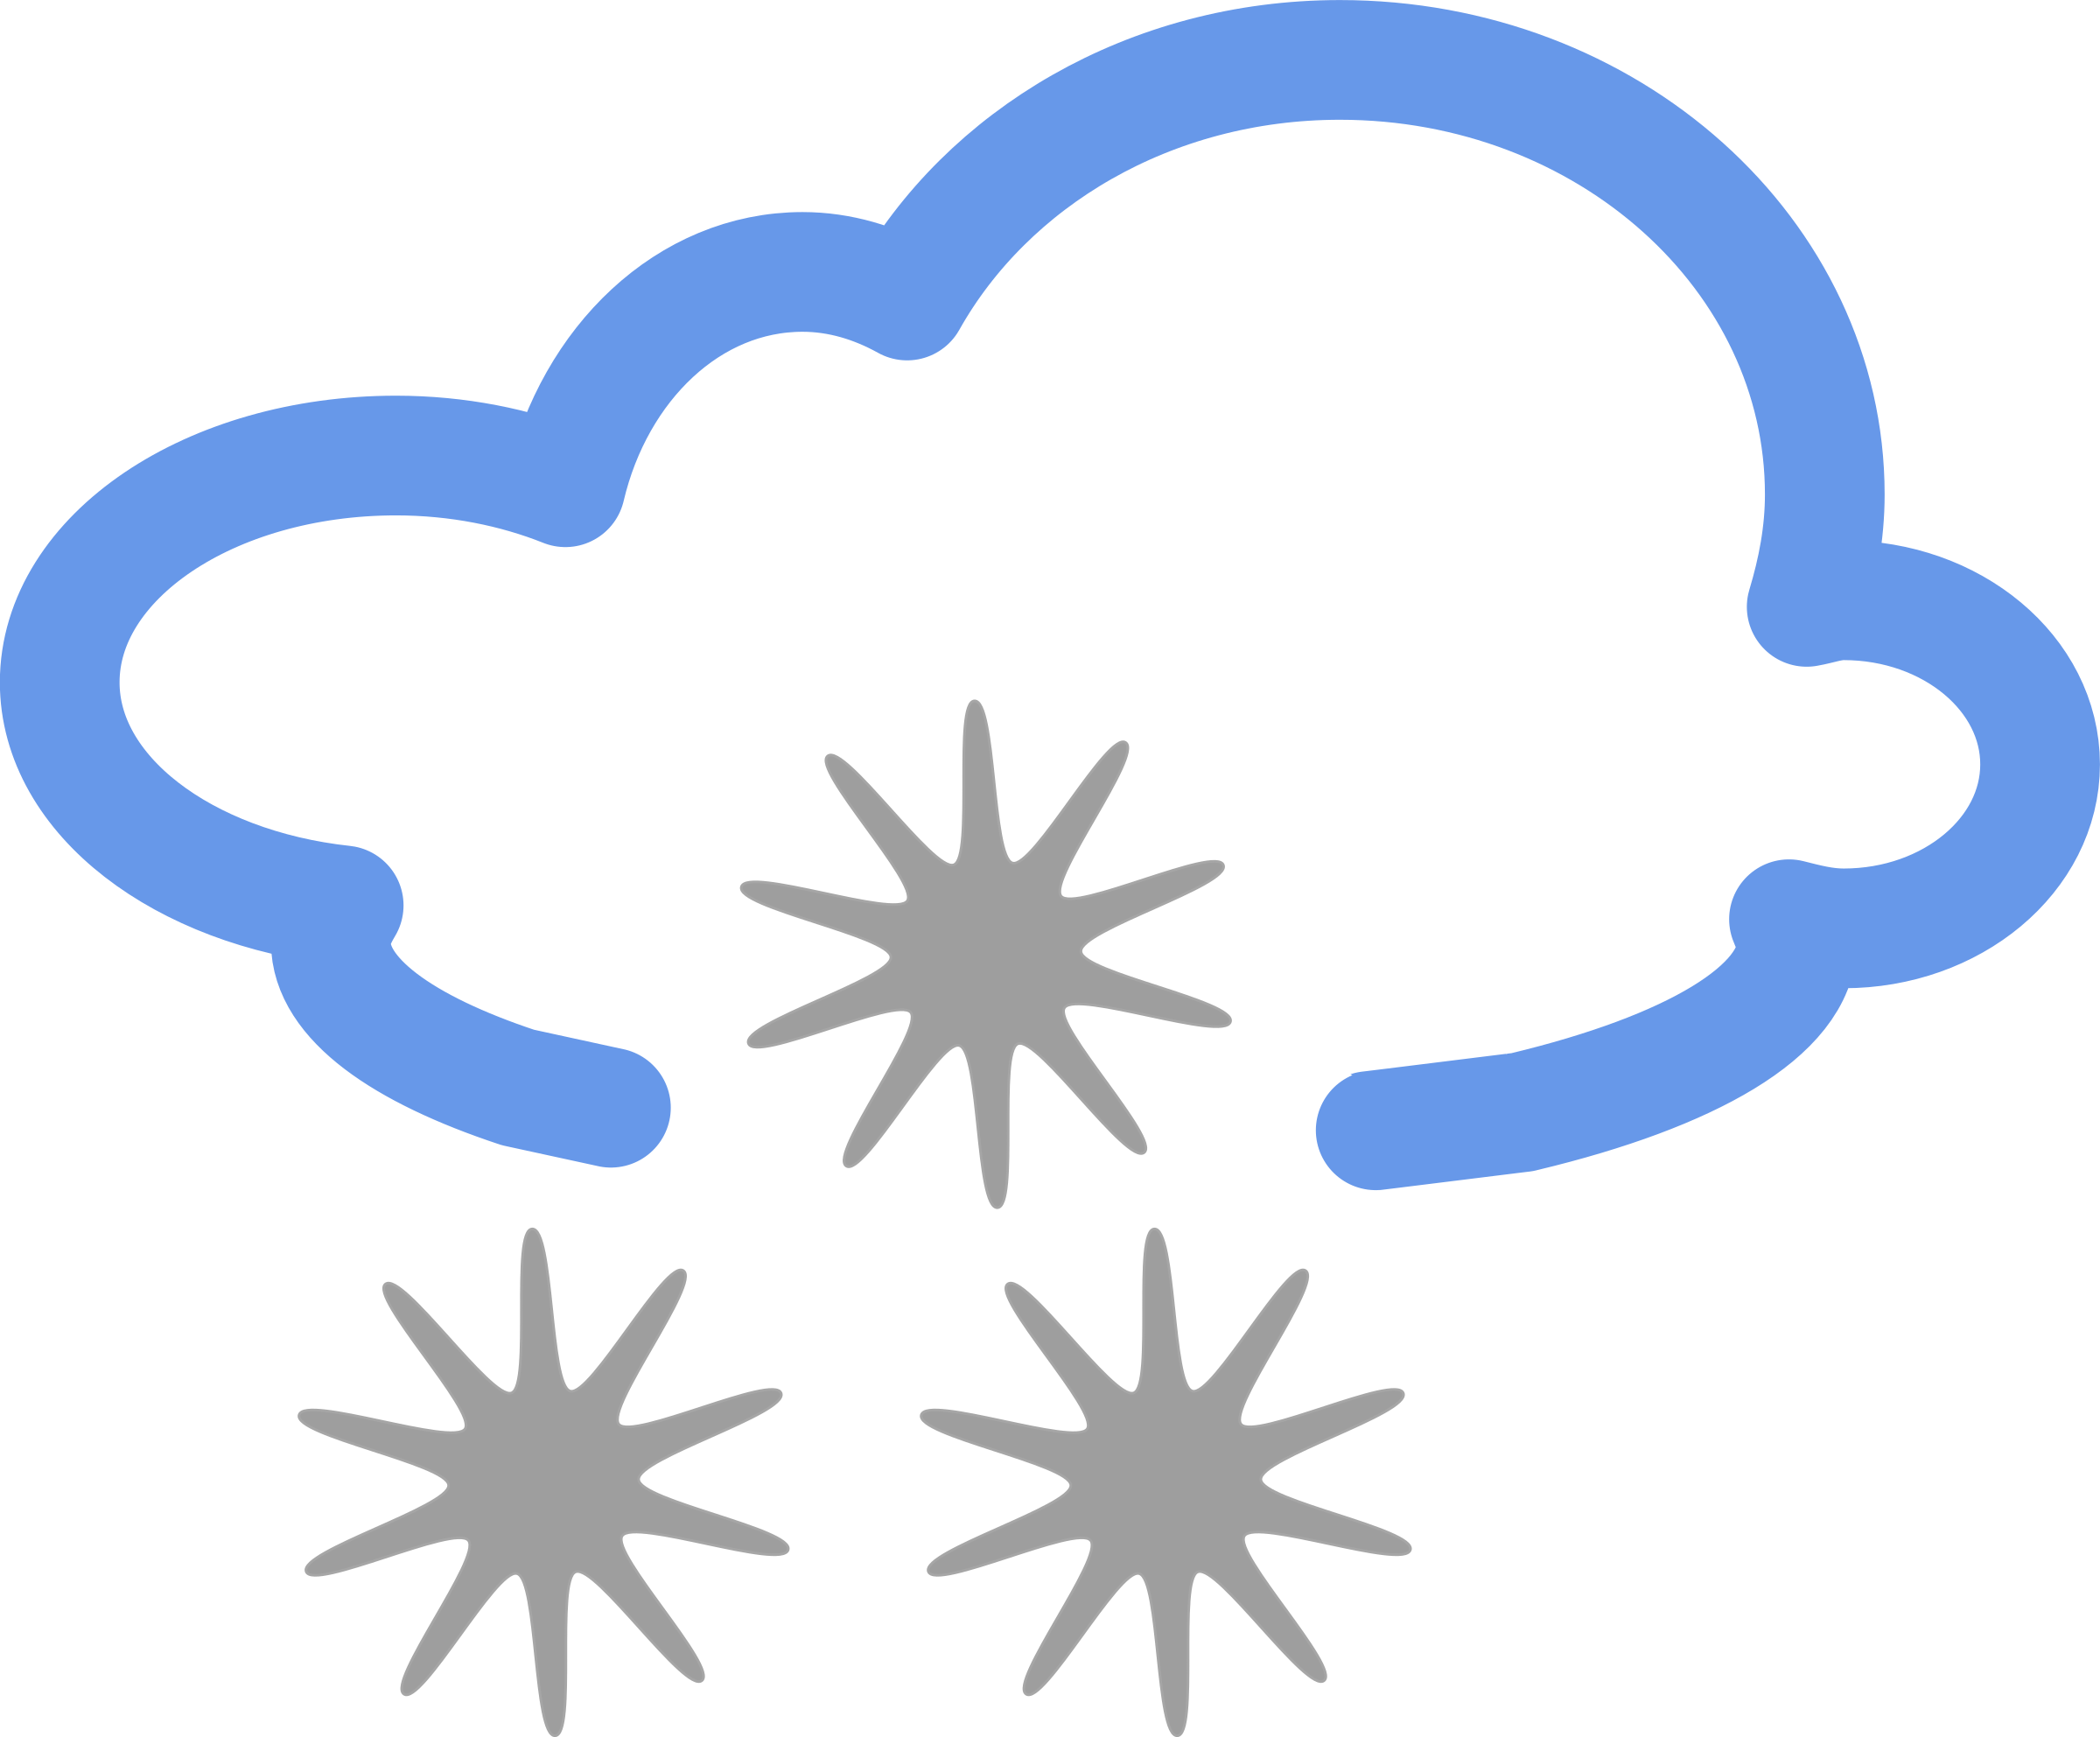 Winter clipart weather. Simple symbols big image